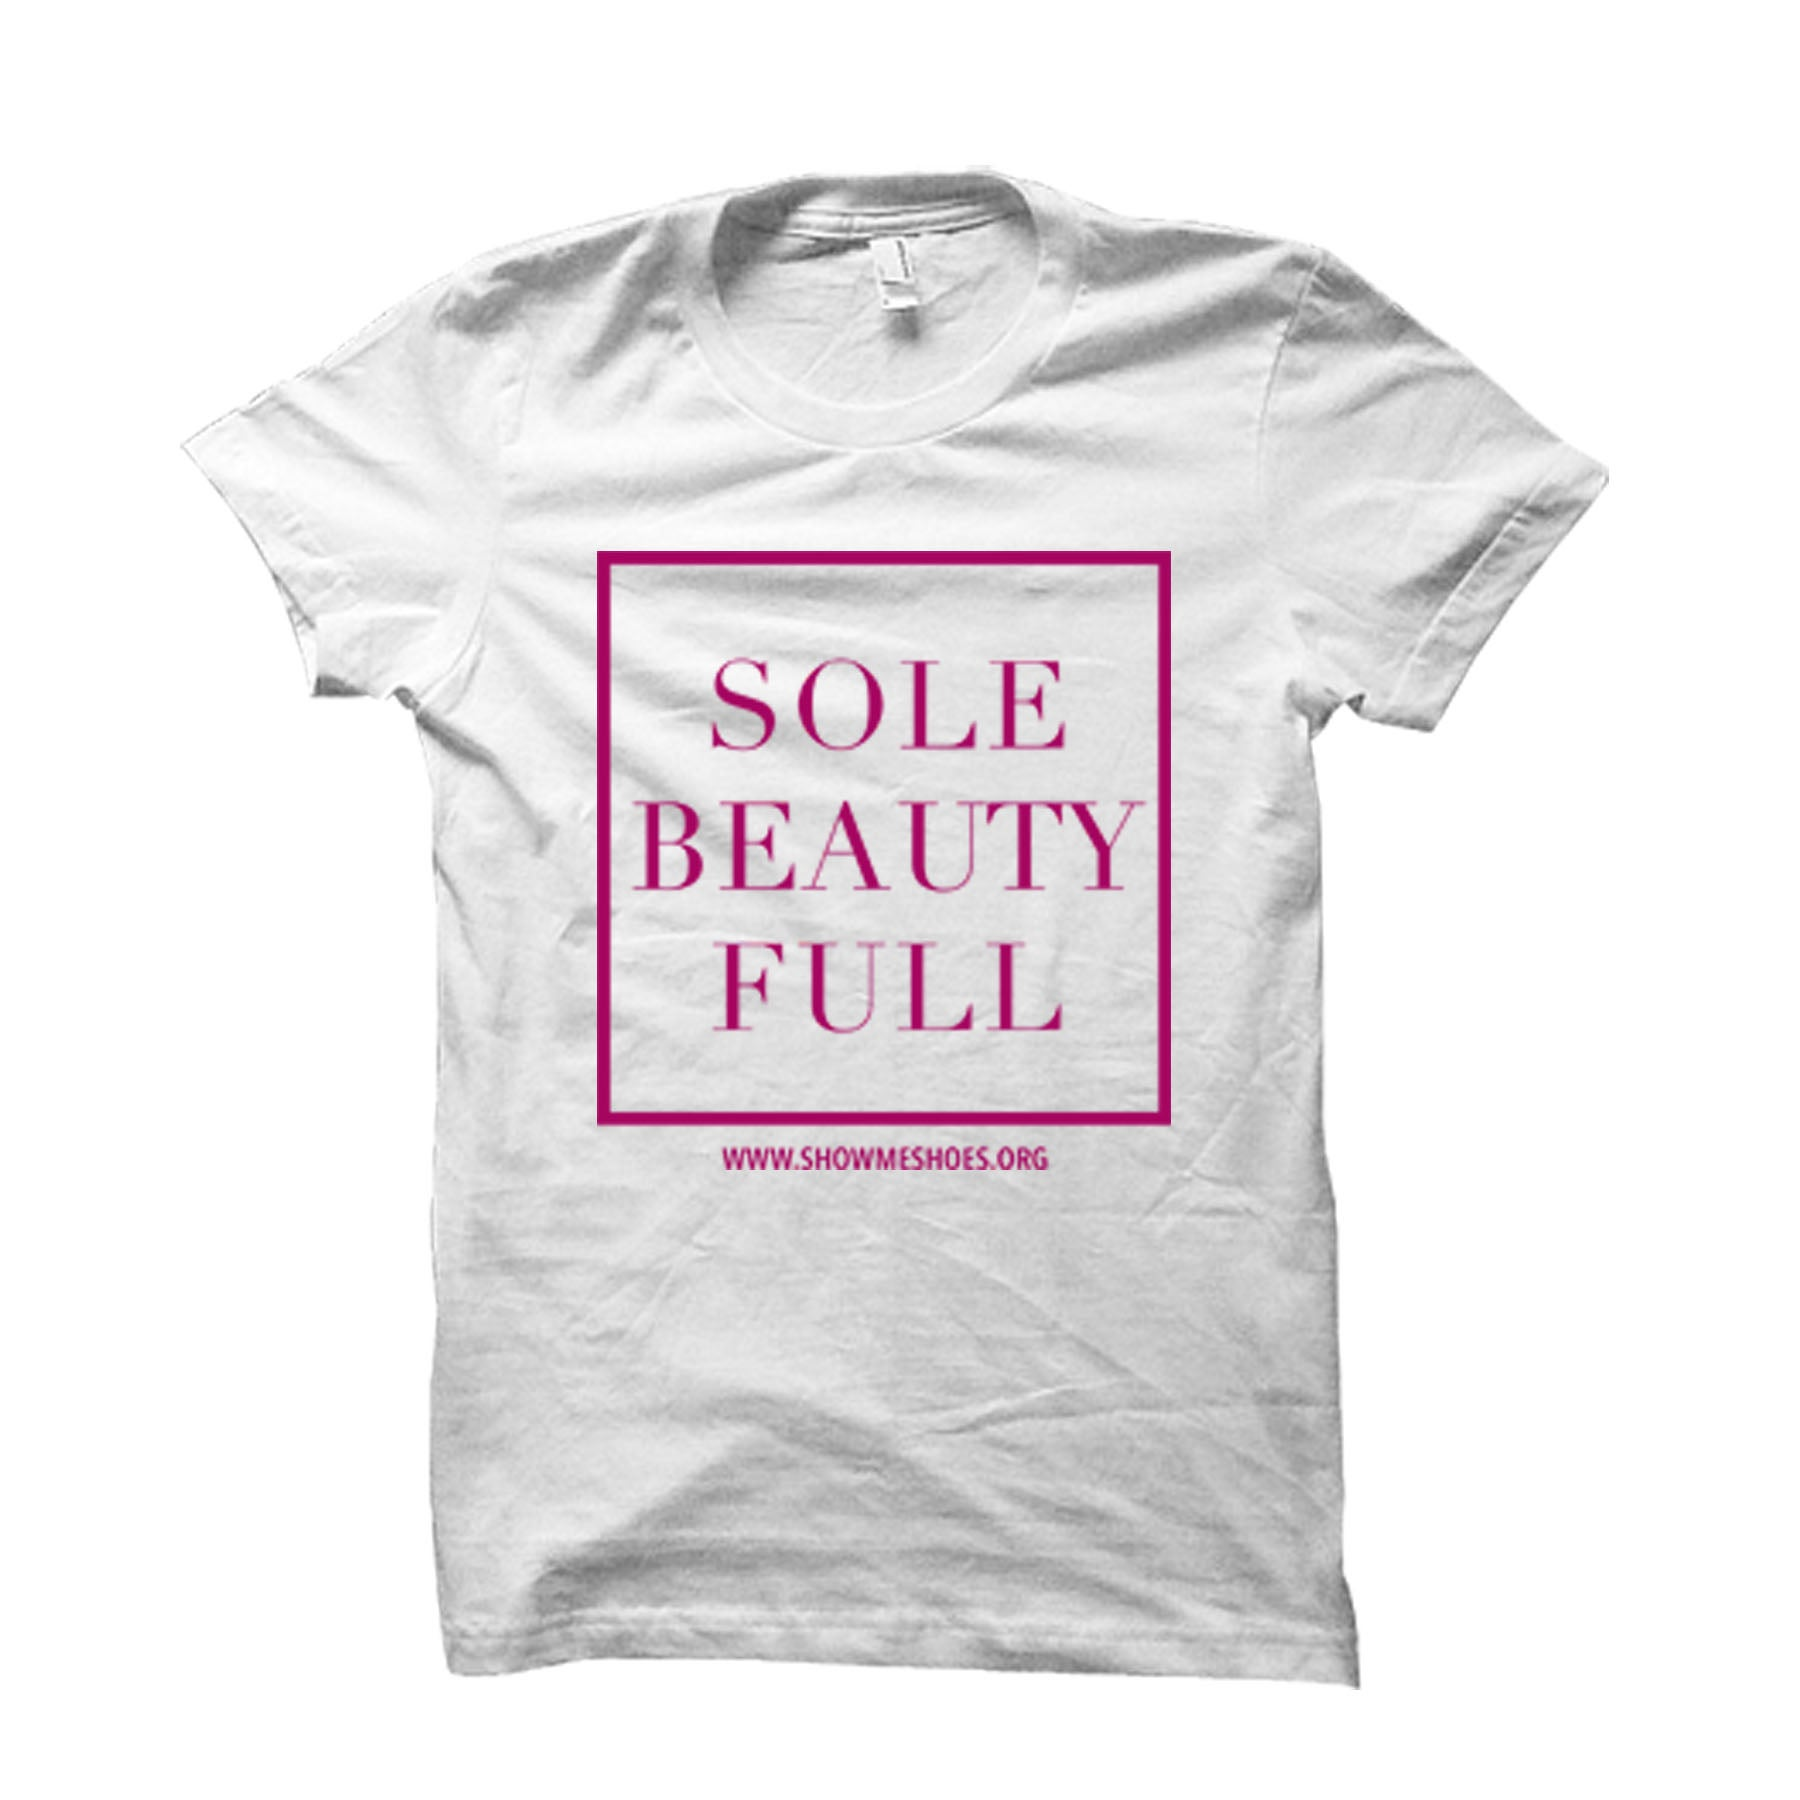 SOLE BEAUTY FULL Tee